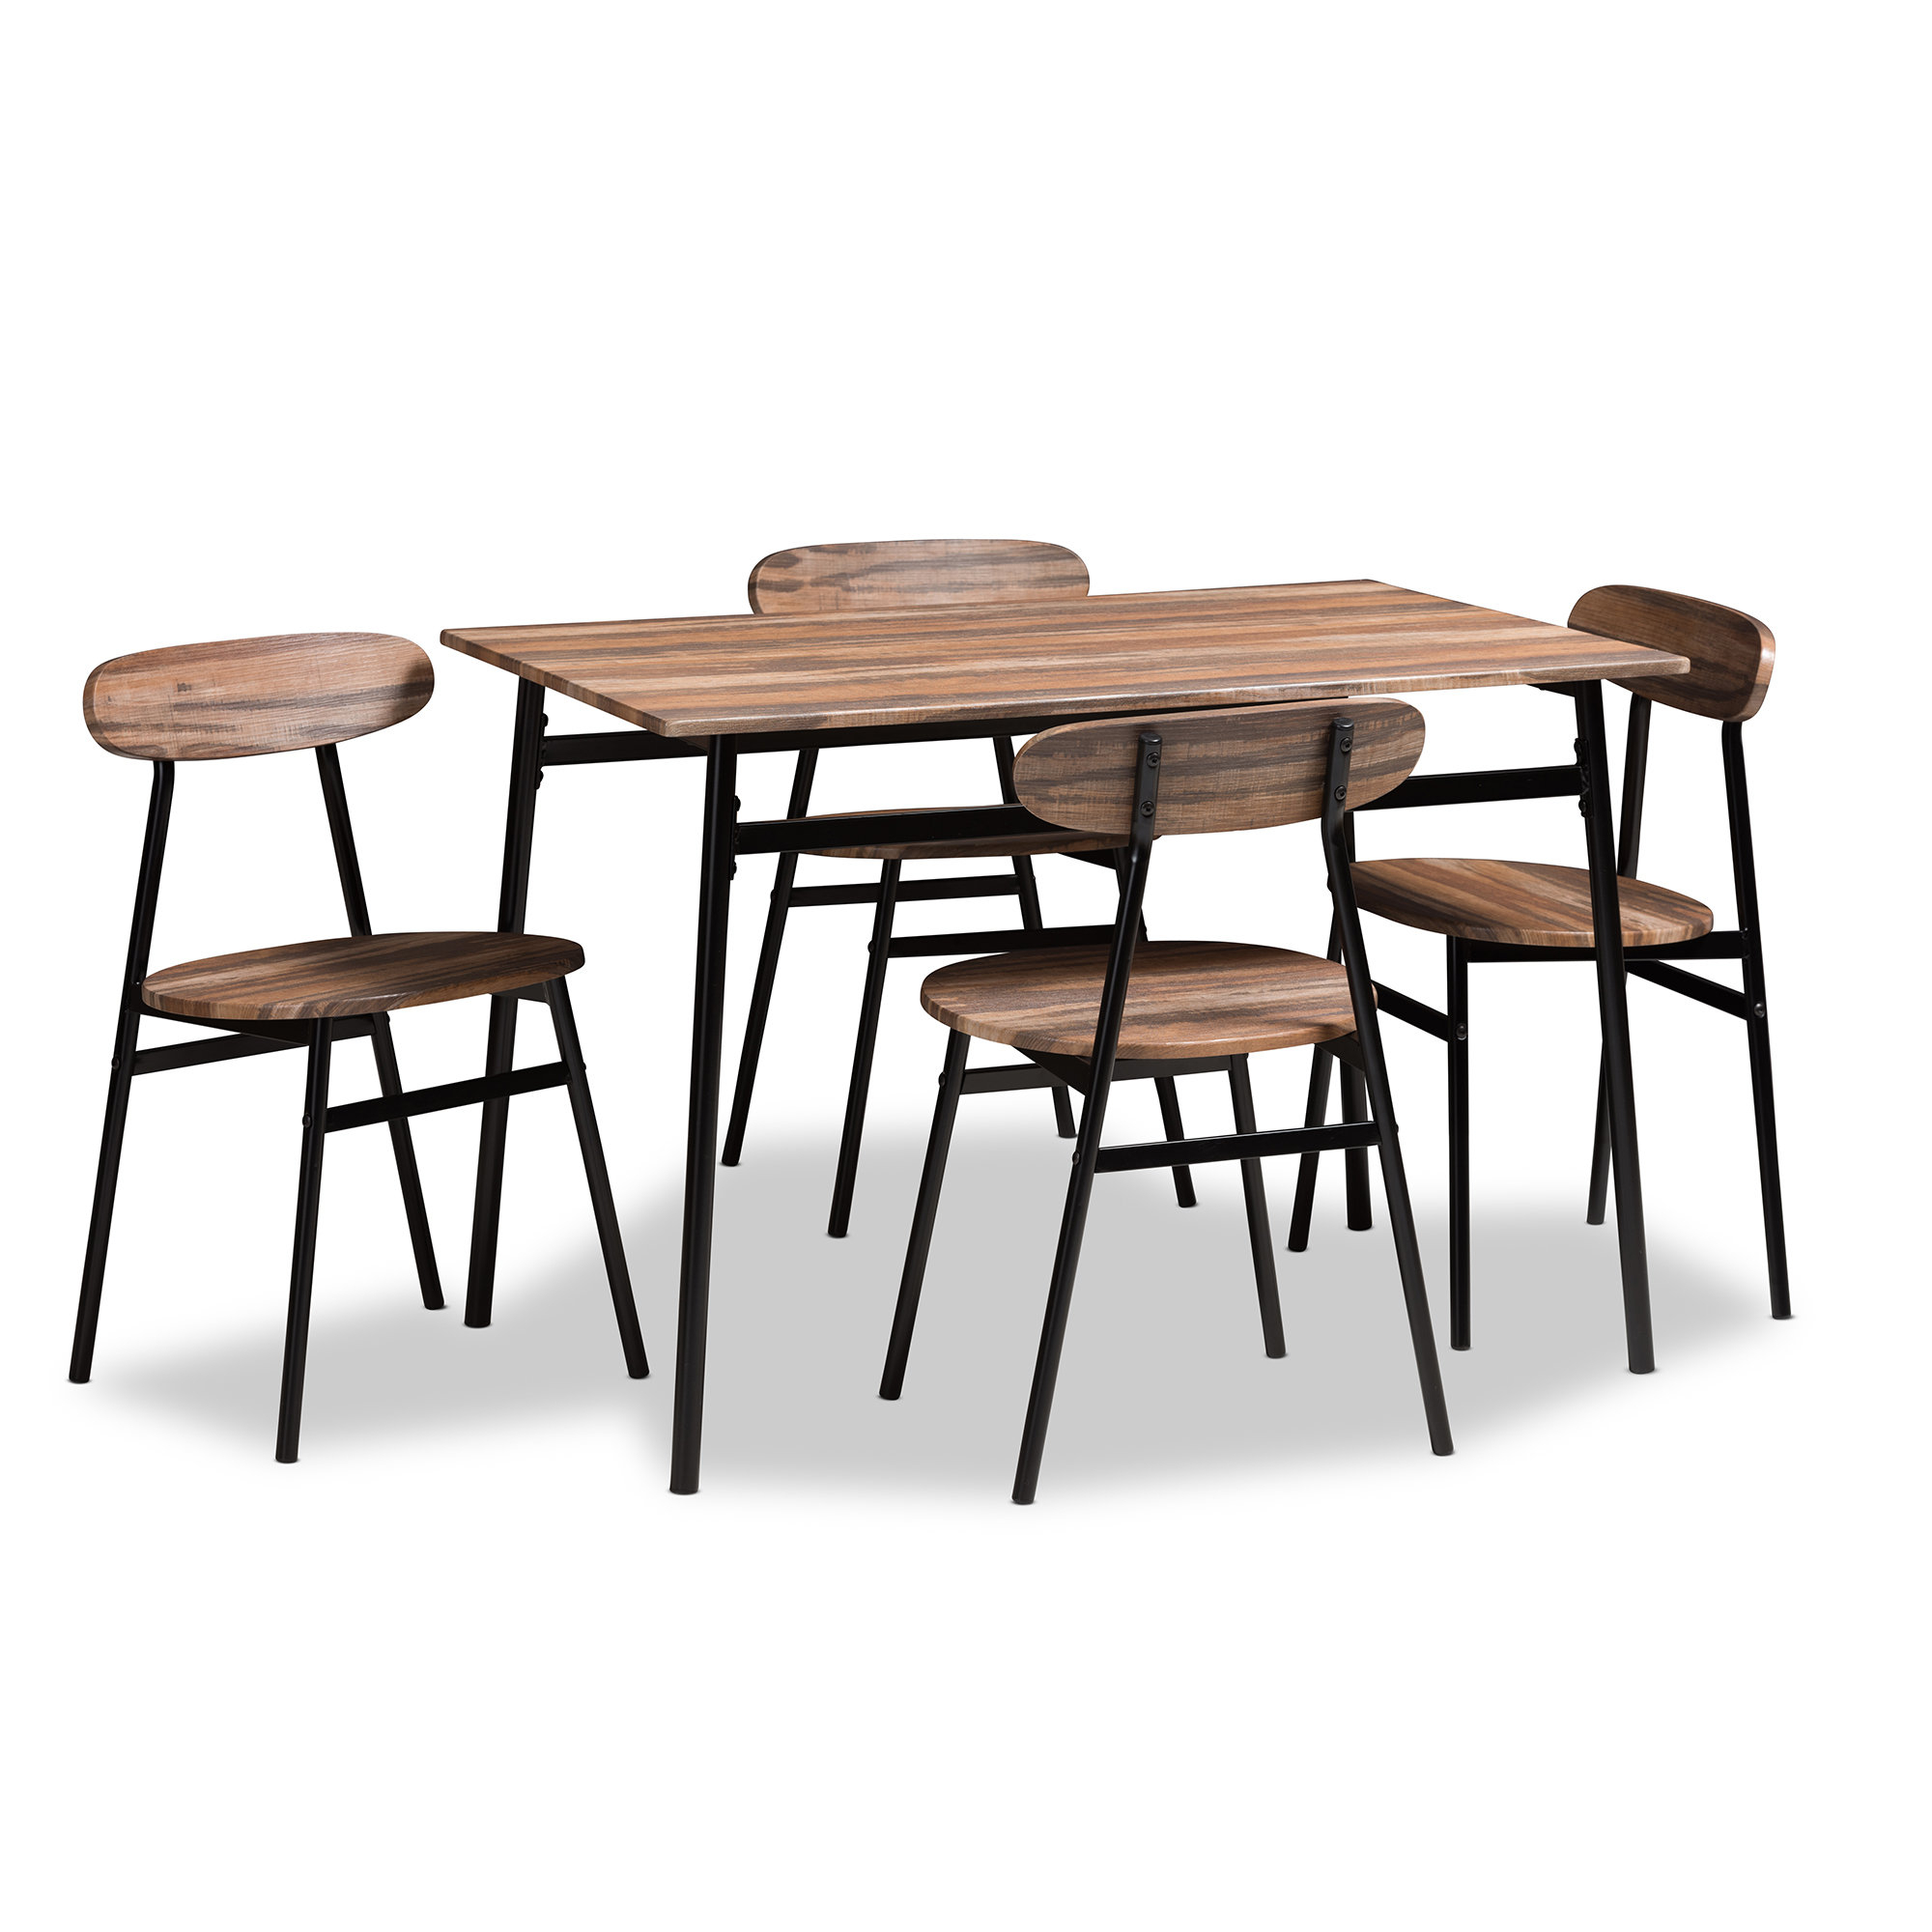 Telauges 5 Piece Dining Set With Regard To Most Current Shepparton Vintage 3 Piece Dining Sets (View 12 of 20)